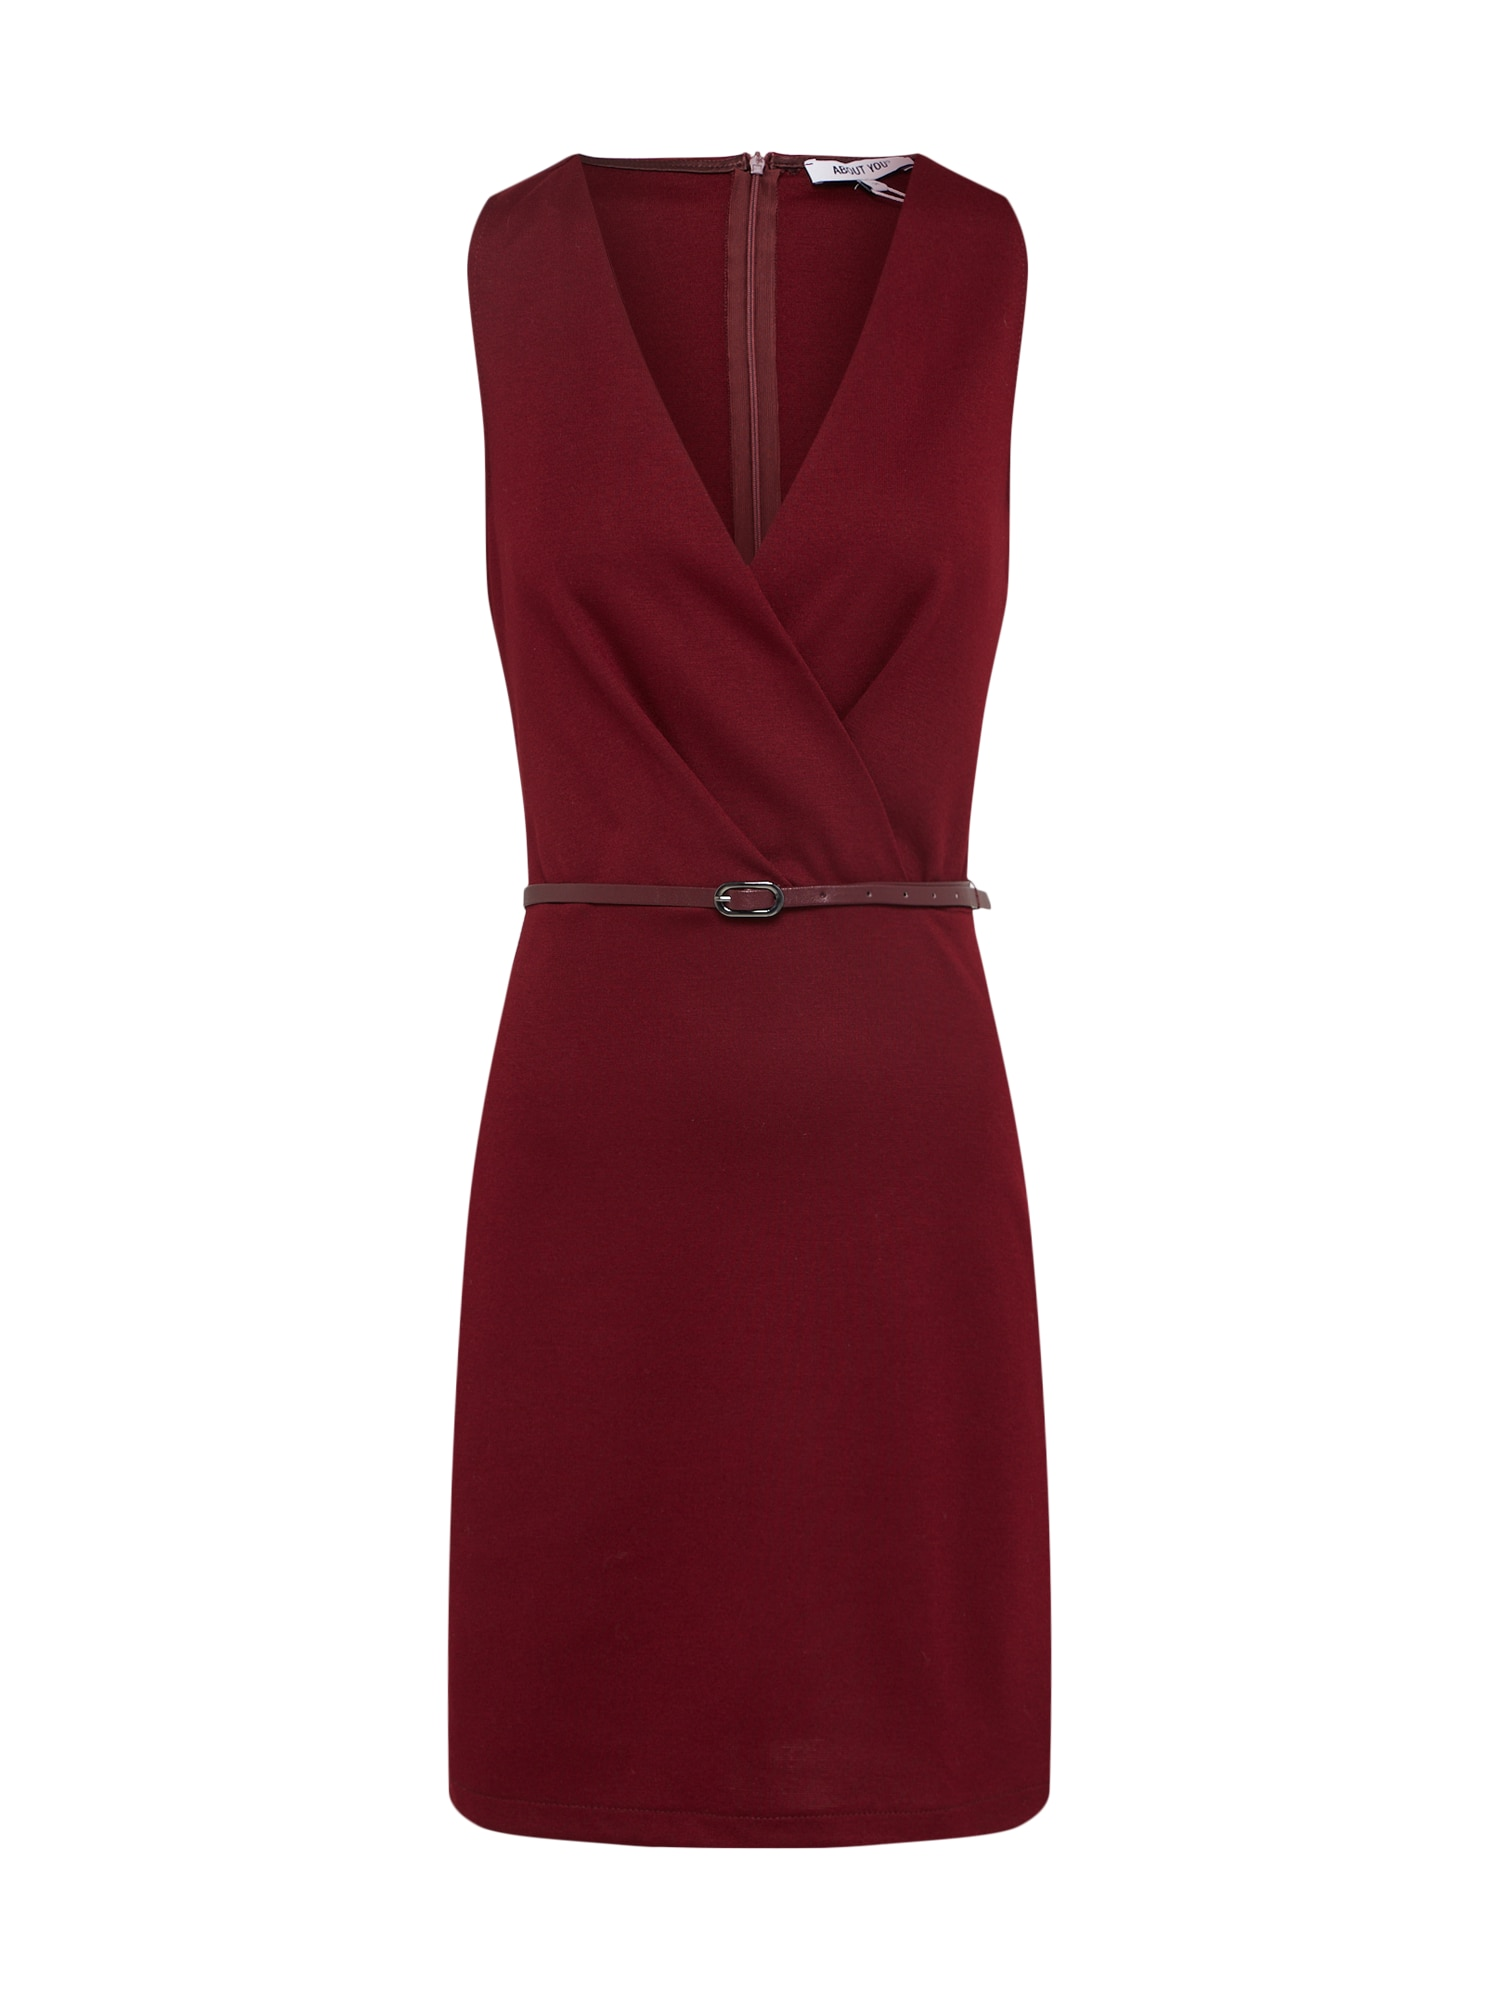 ABOUT YOU Jurk 'Ludmilla Dress' bourgogne